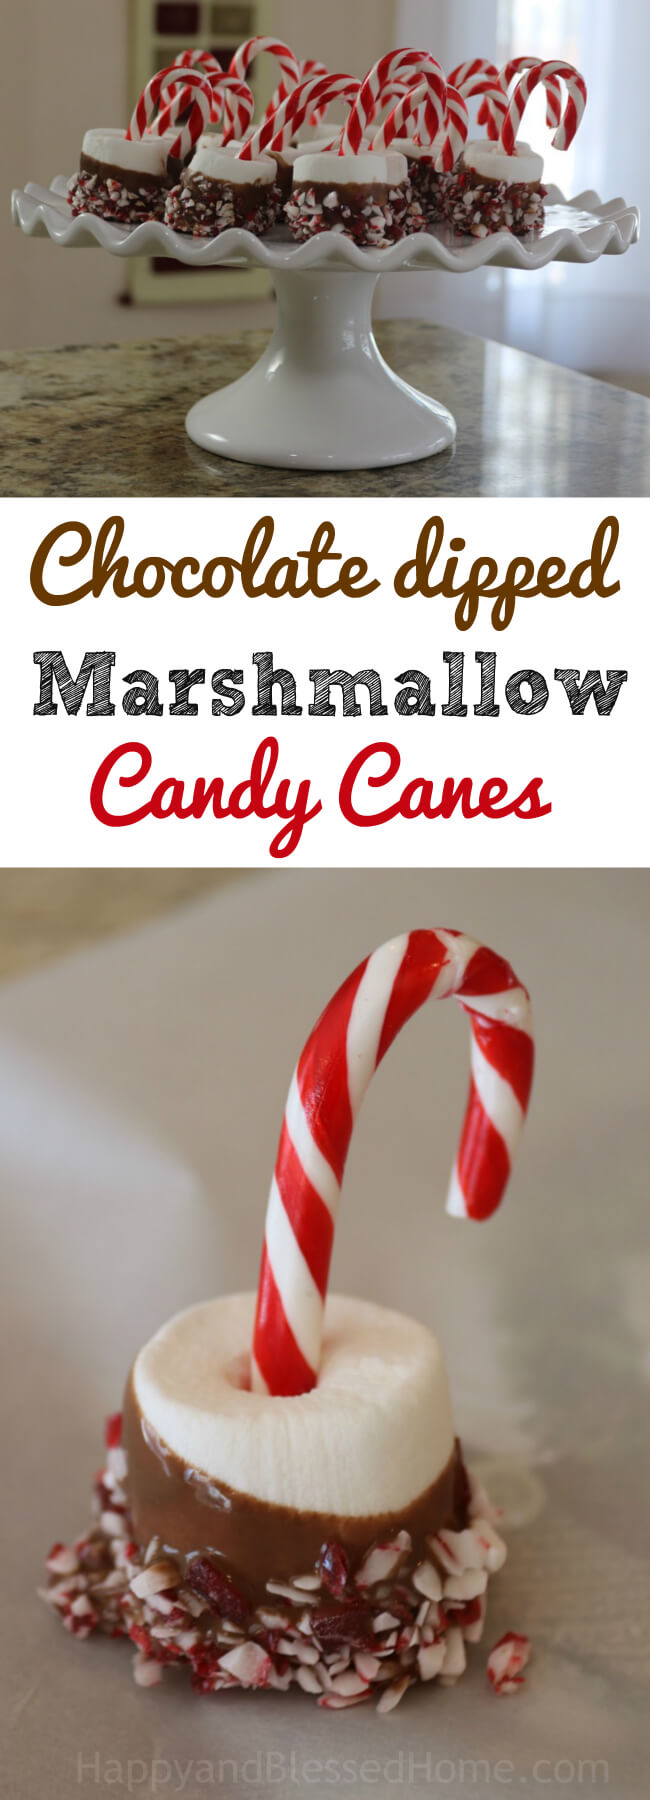 Easy recipe for Chocolate dipped Marshmallow Candy Canes